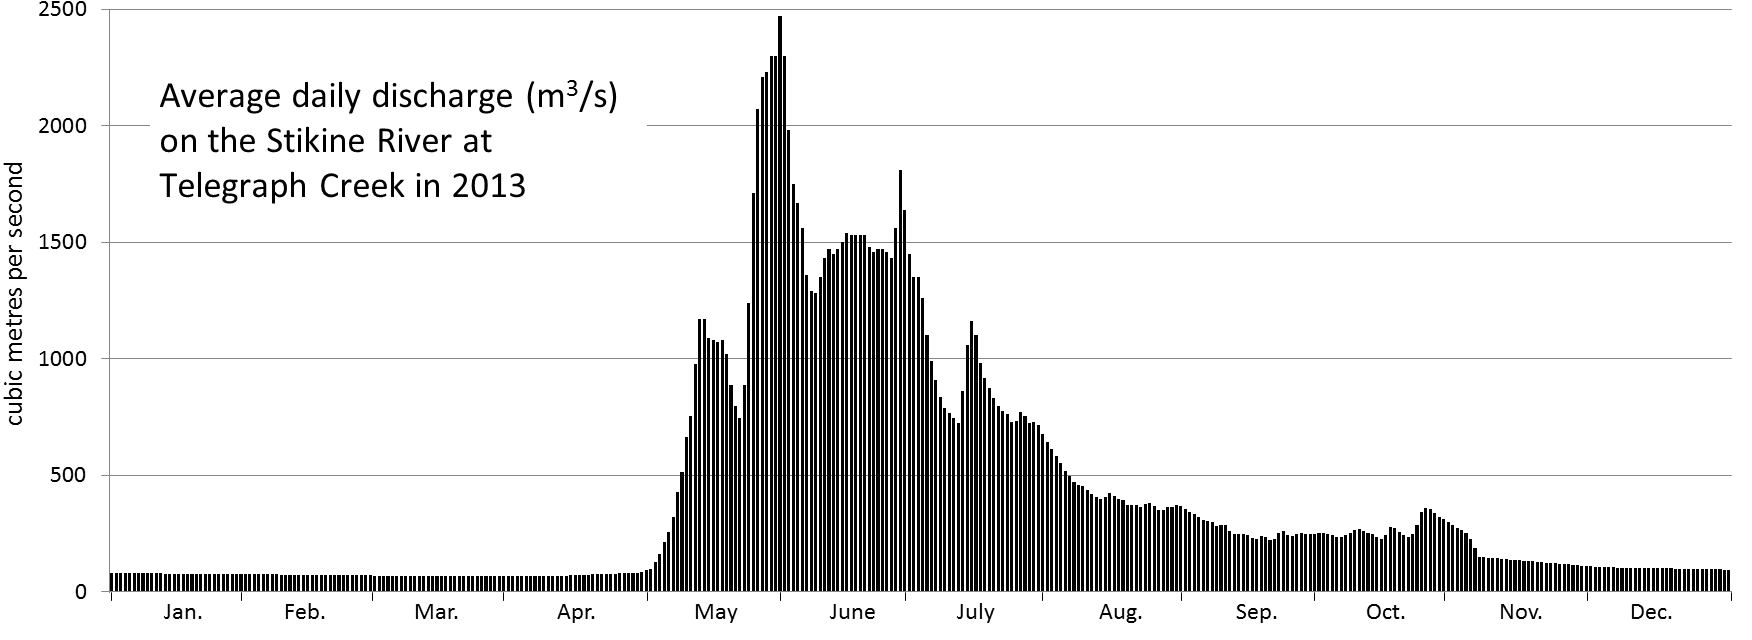 Figure 13.24 Variations in discharge of the Stikine River during 2013. [SE from data at Water Survey of Canada, Environment Canada, http://www.ec.gc.ca/rhc-wsc/]